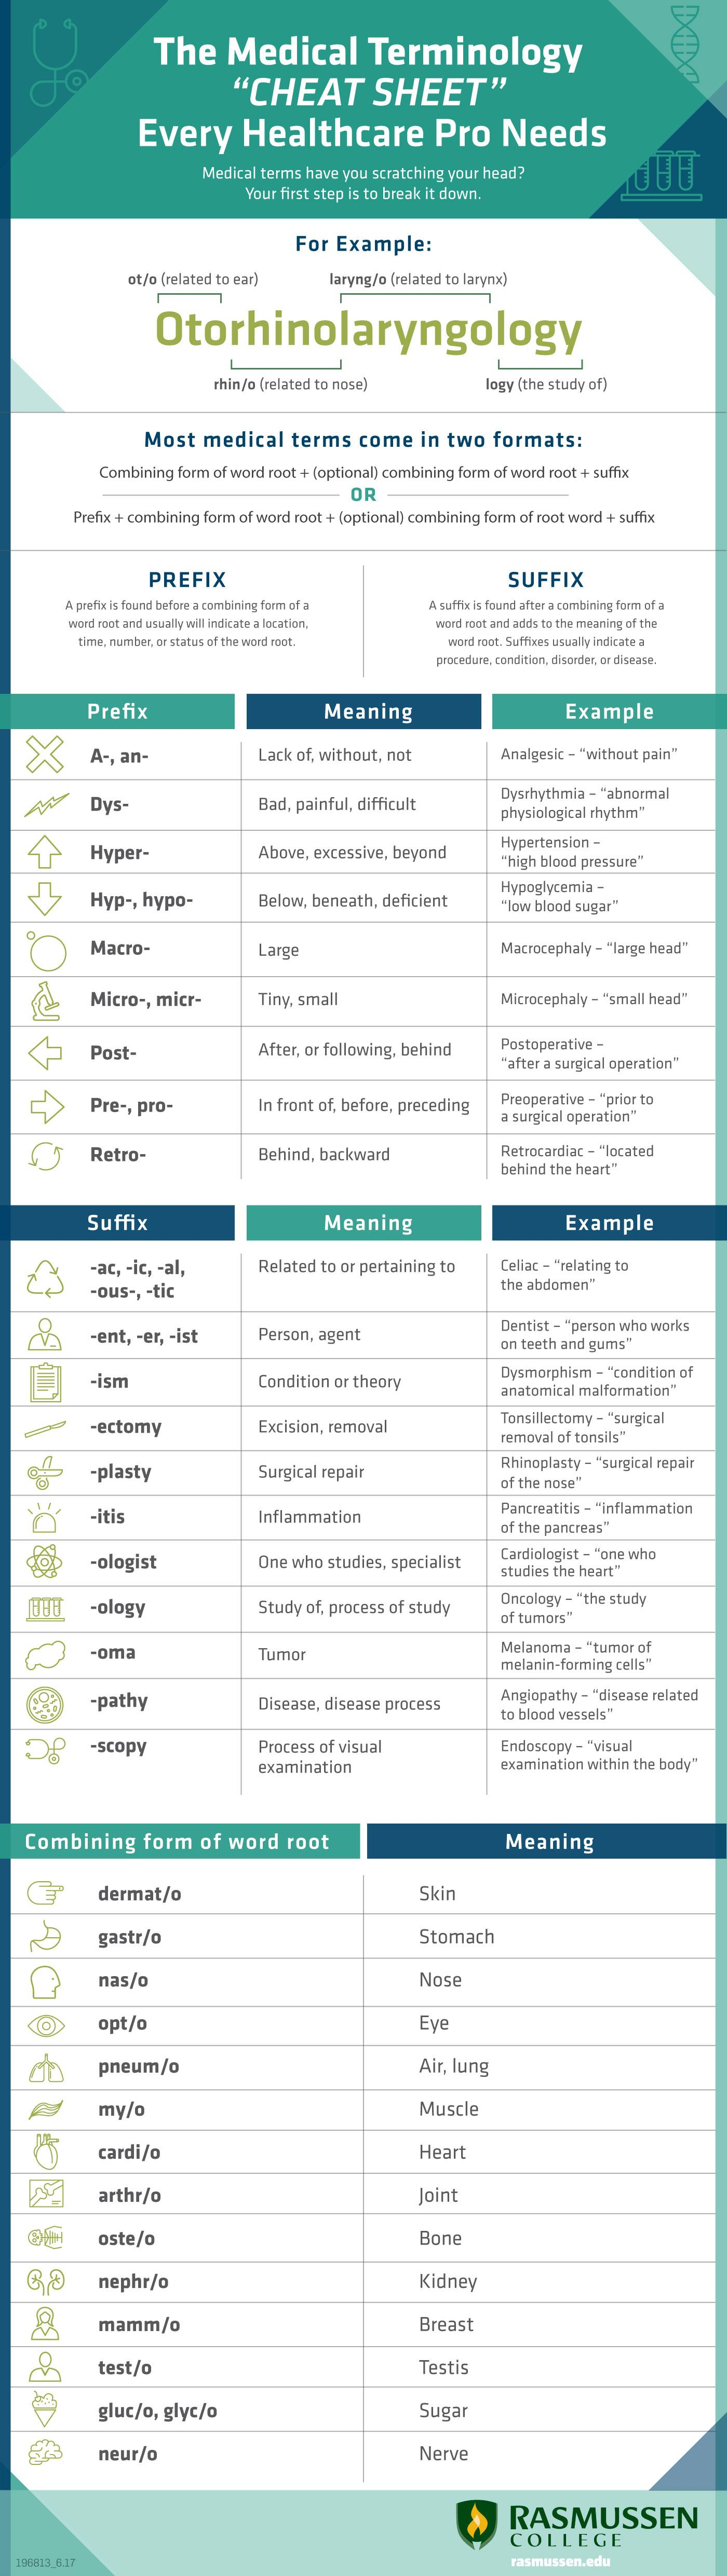 "The Medical Terminology ""Cheat Sheet"" Every Healthcare Pro Needs ..."